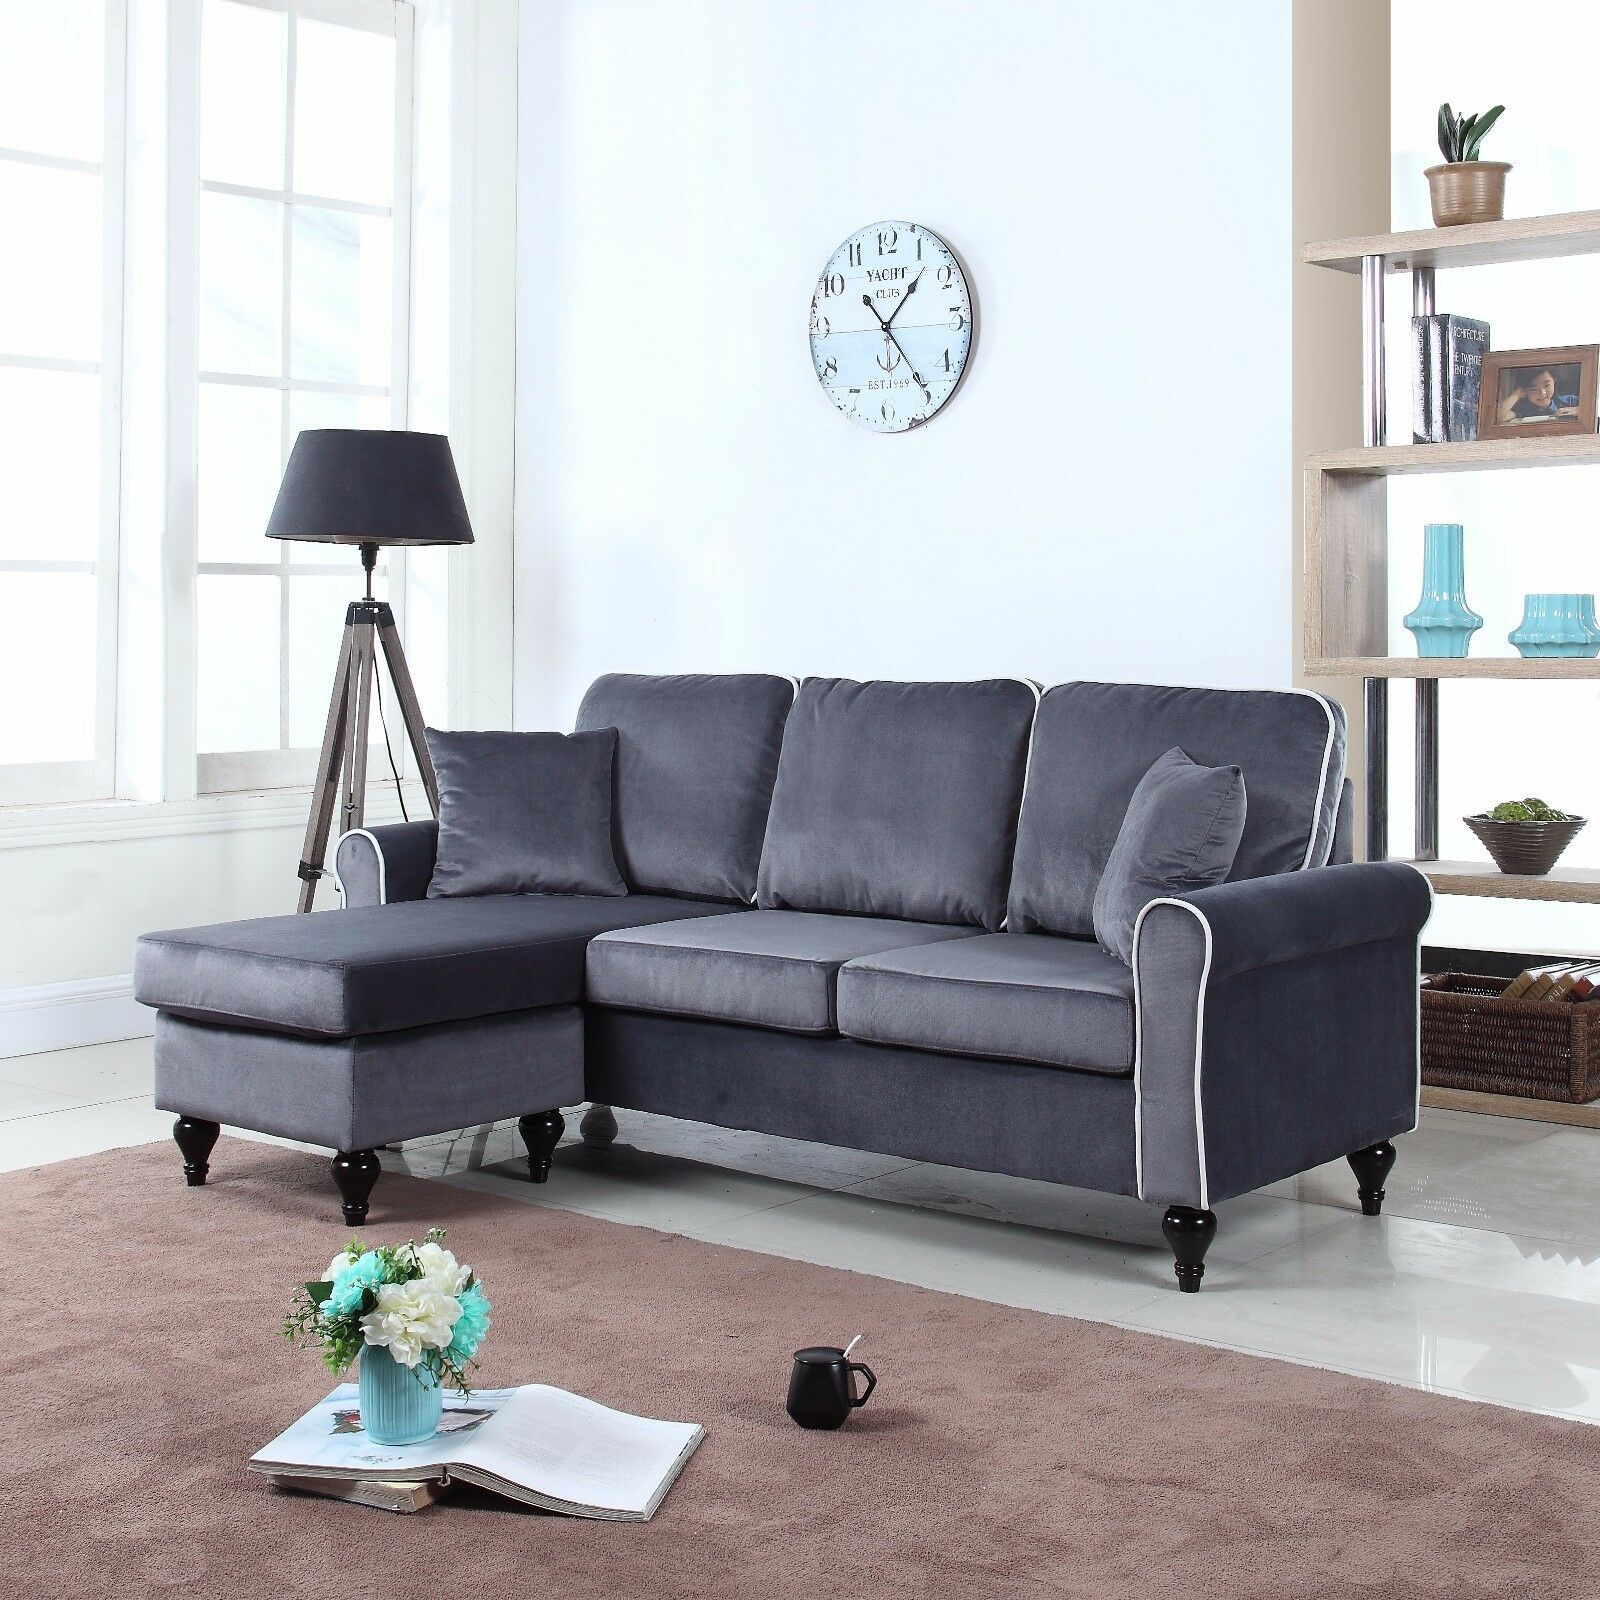 s l1600 Traditional Small Space Grey Velvet Sectional Sofa with Reversible Chaise